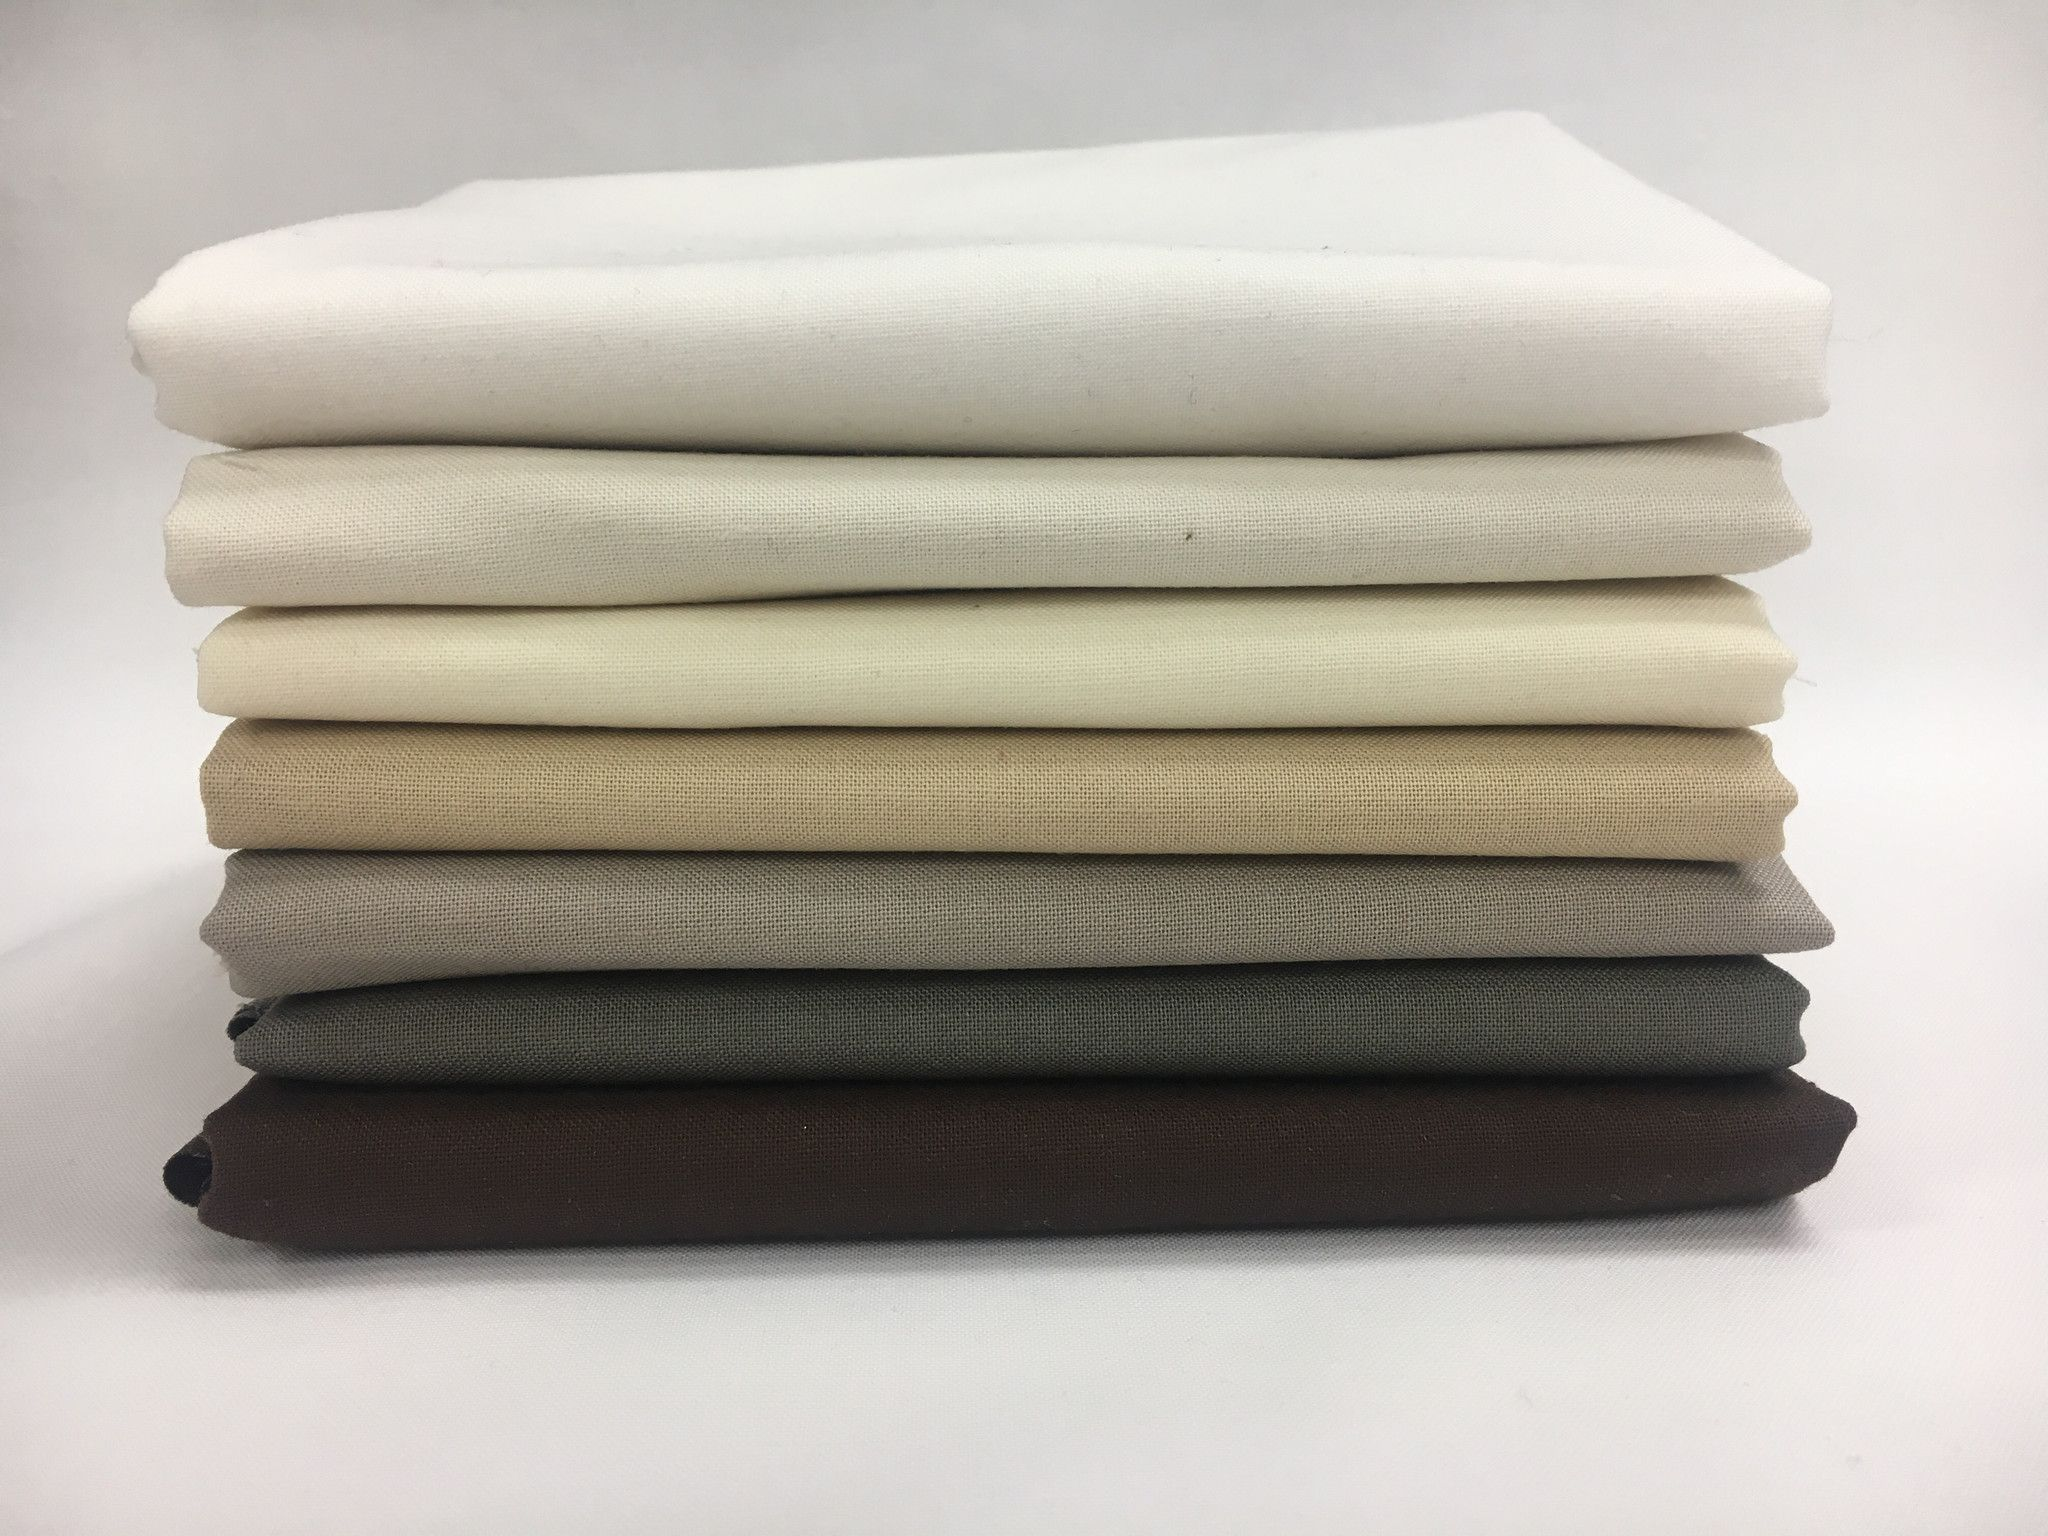 Moda Bella Solids Half Meter Bundle 7 Pieces Dark Warm Neutrals  #newstuff #spreadthelove #ruler #quilting